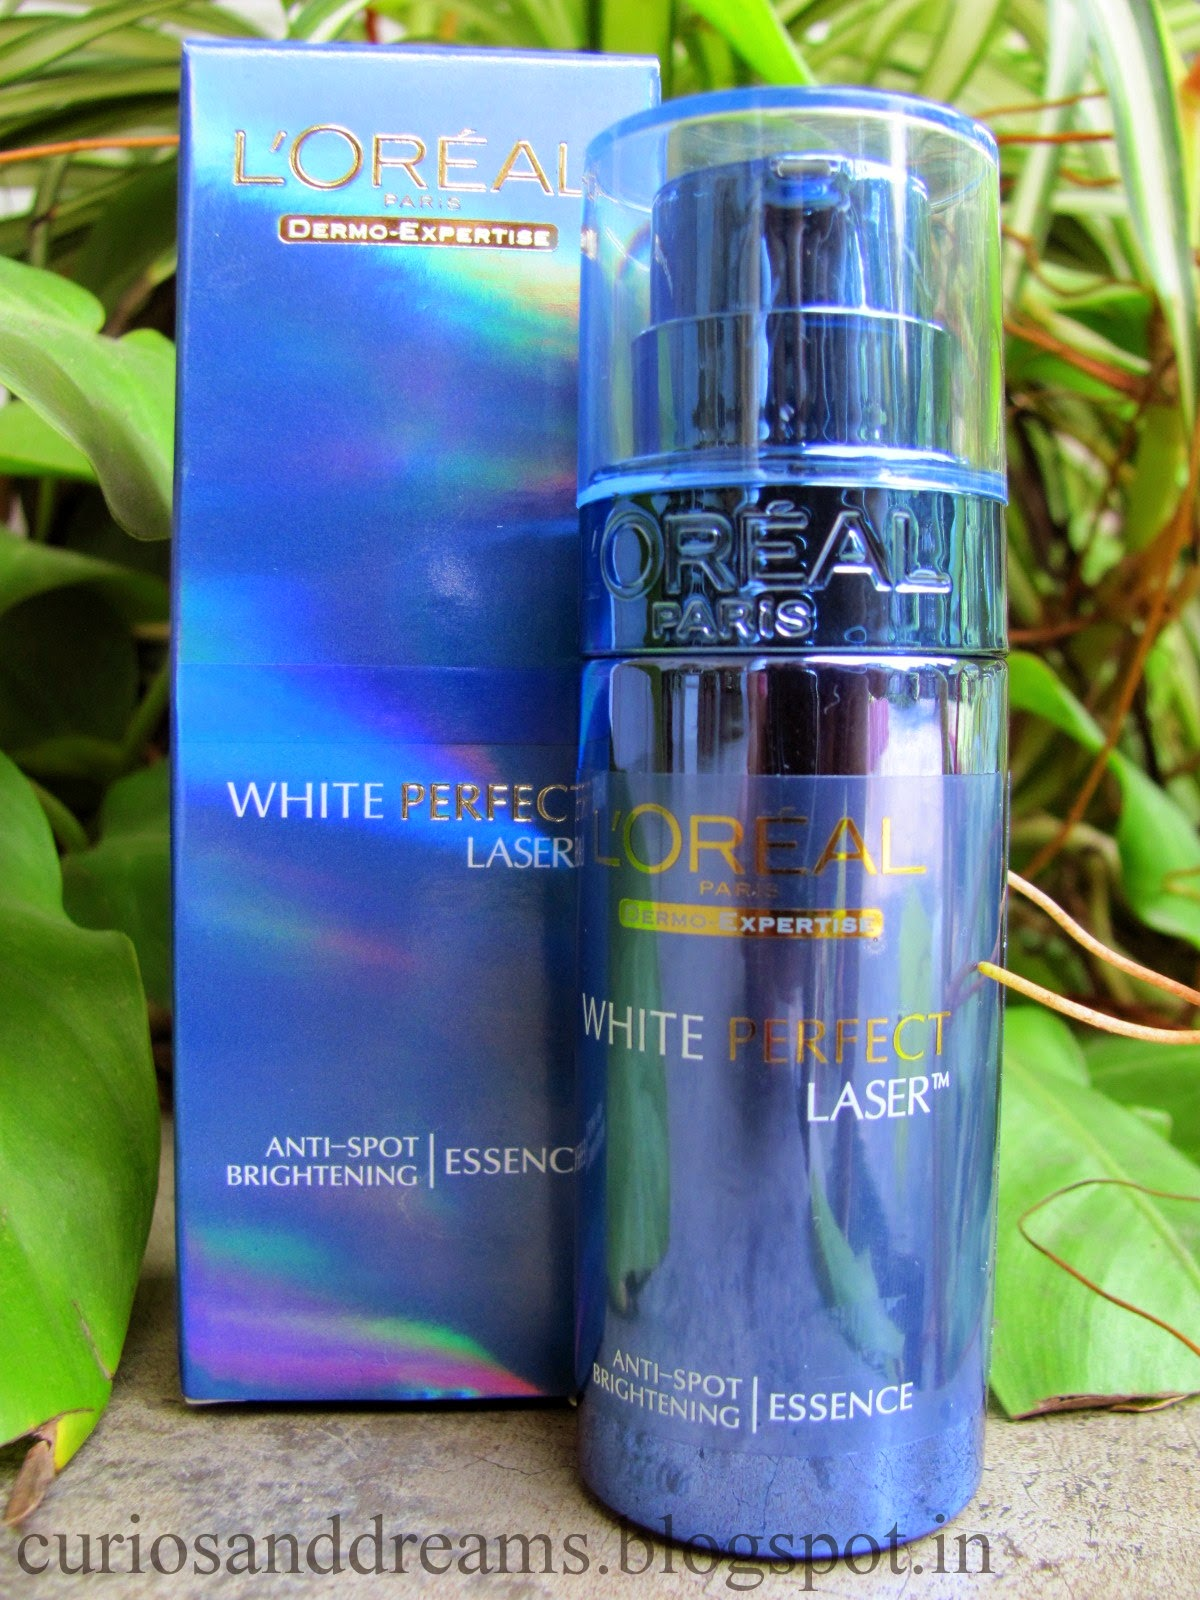 Loreal Paris White Perfect Laser, Loreal White Perfect Laser essence, Loreal White Perfect Laser essence review